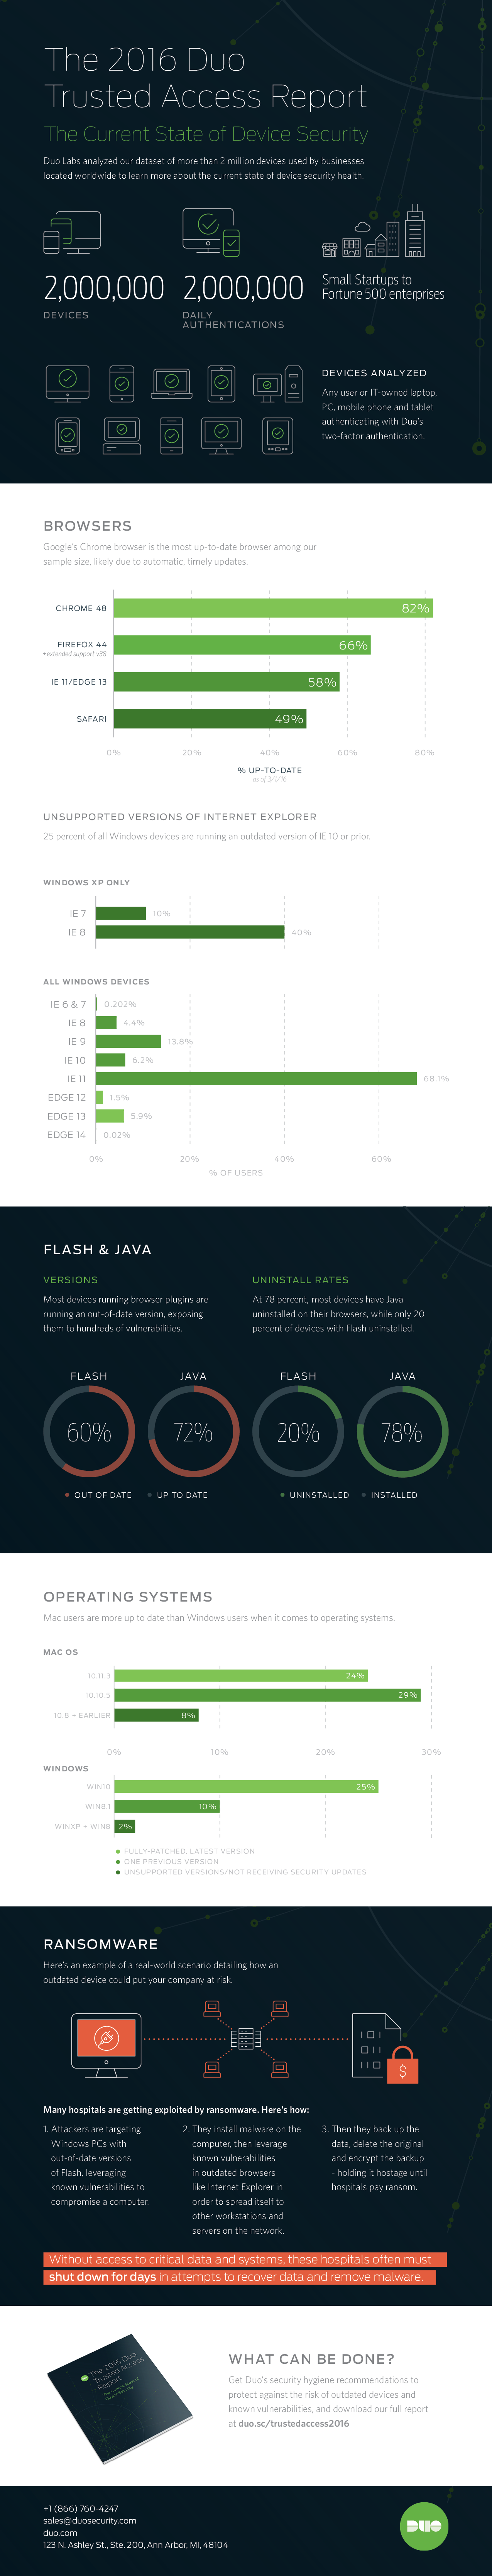 TRUSTED ACCESS REPORT I INFOGRAPHIC